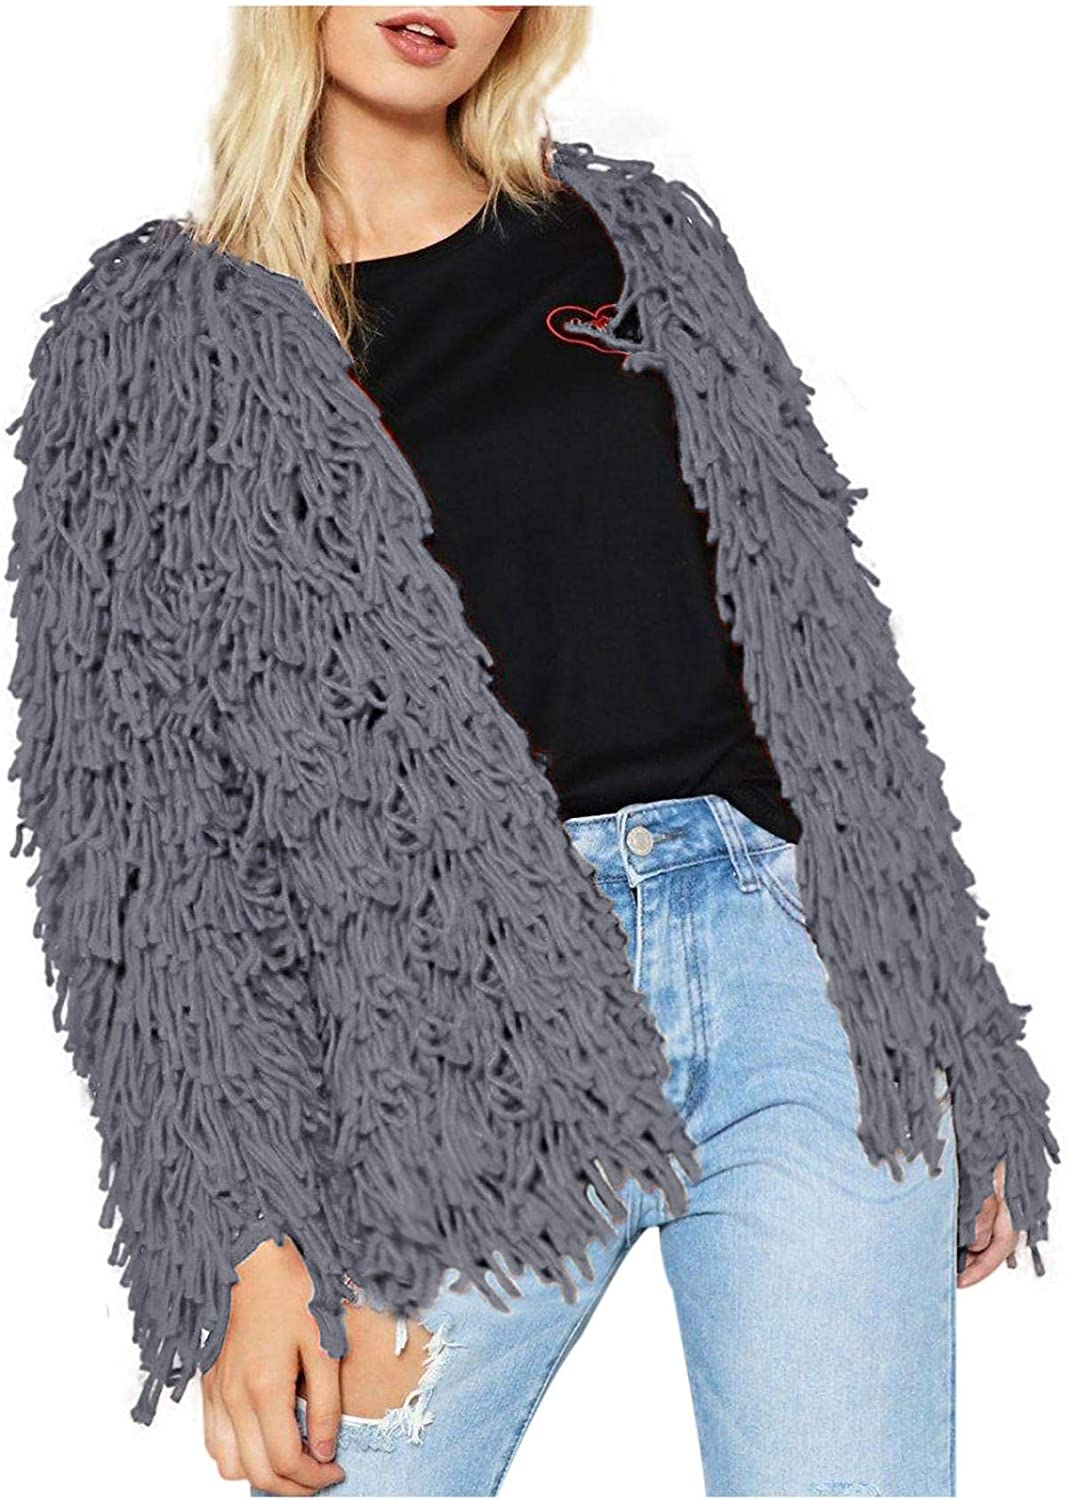 Evangelia.YM Womens San Jose Mall Cardigan Sweater Jacket Butto Coat Invisible Long Beach Mall